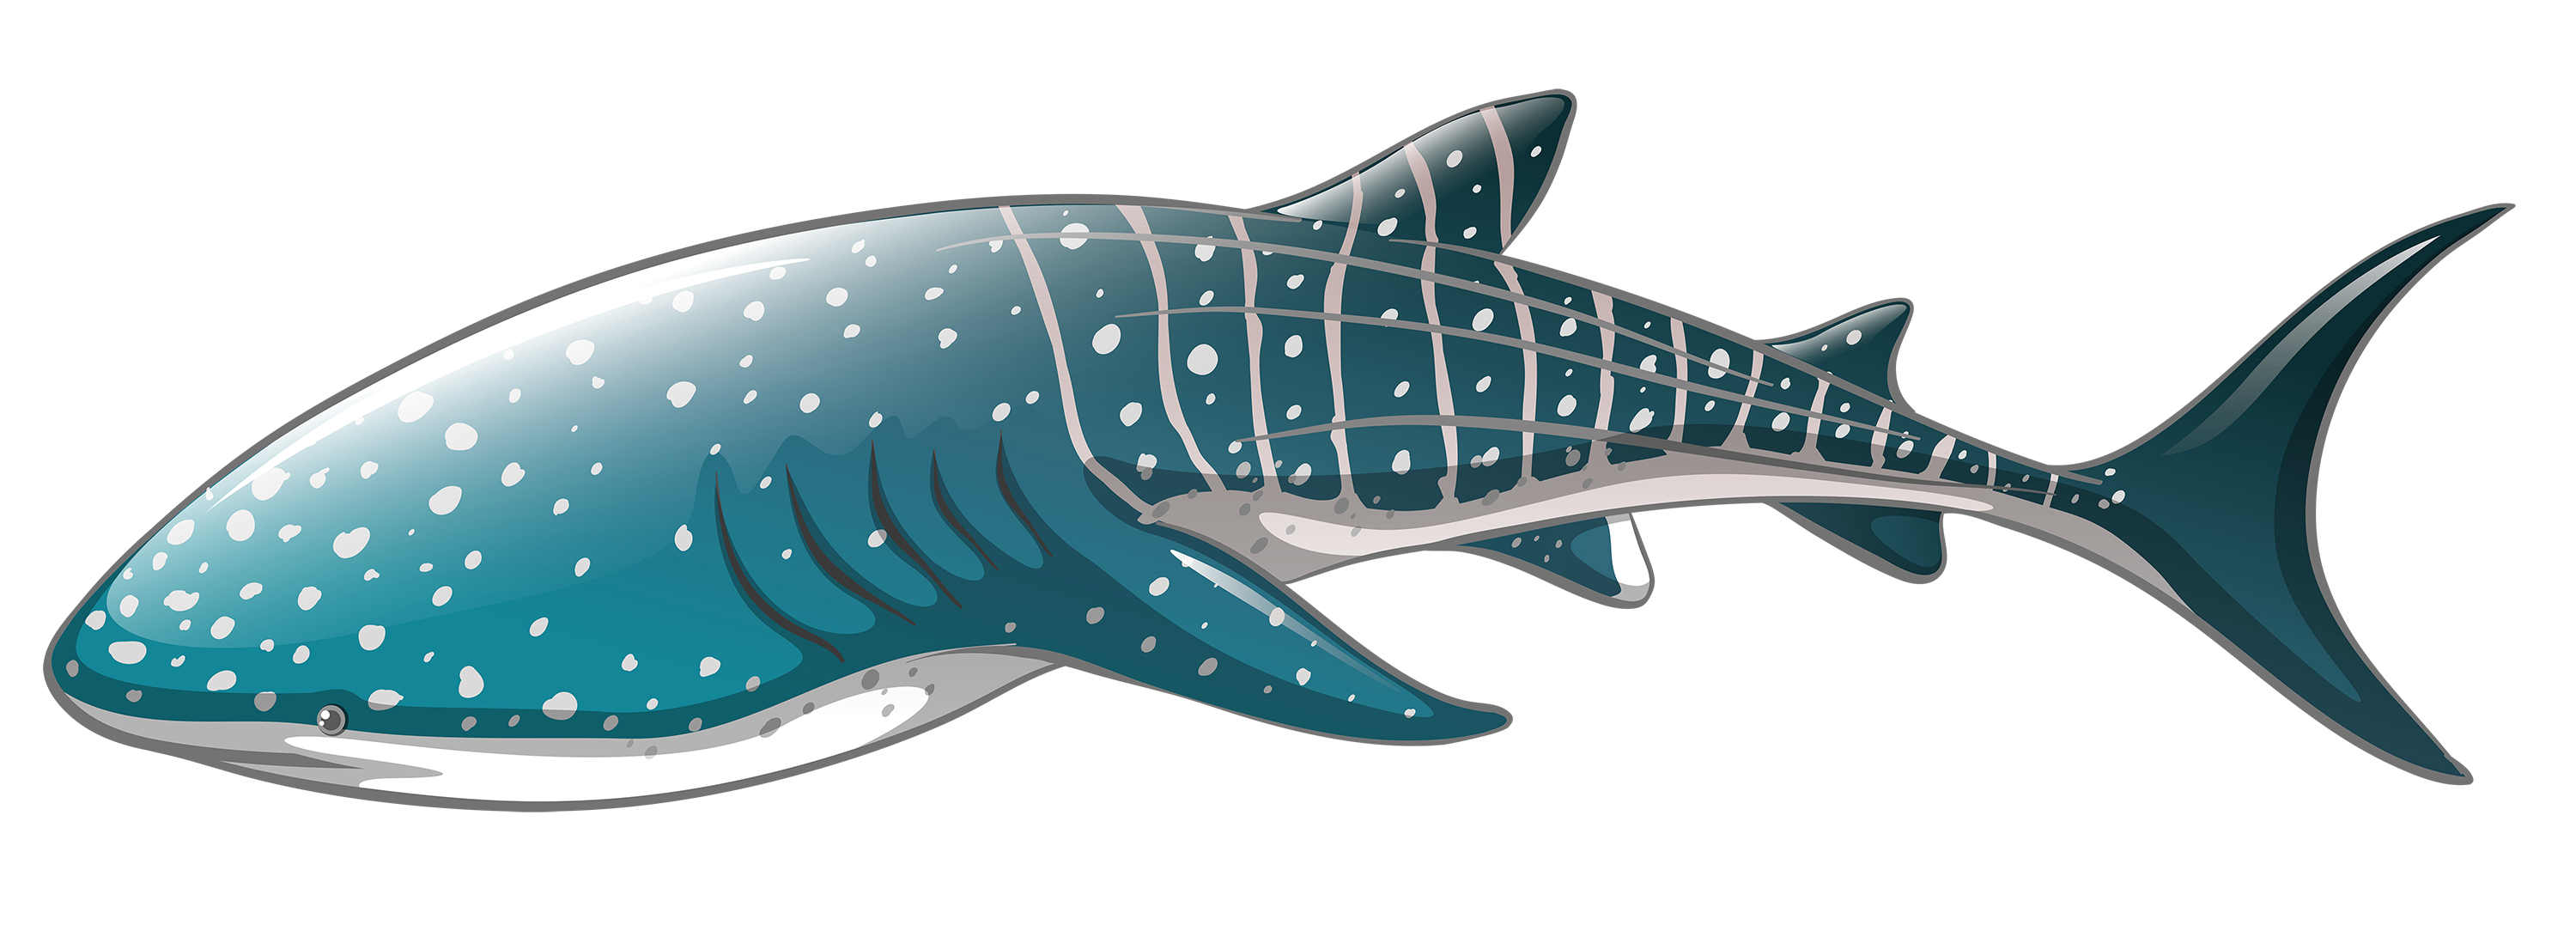 Shark png best web. Whale clipart graphic freeuse library